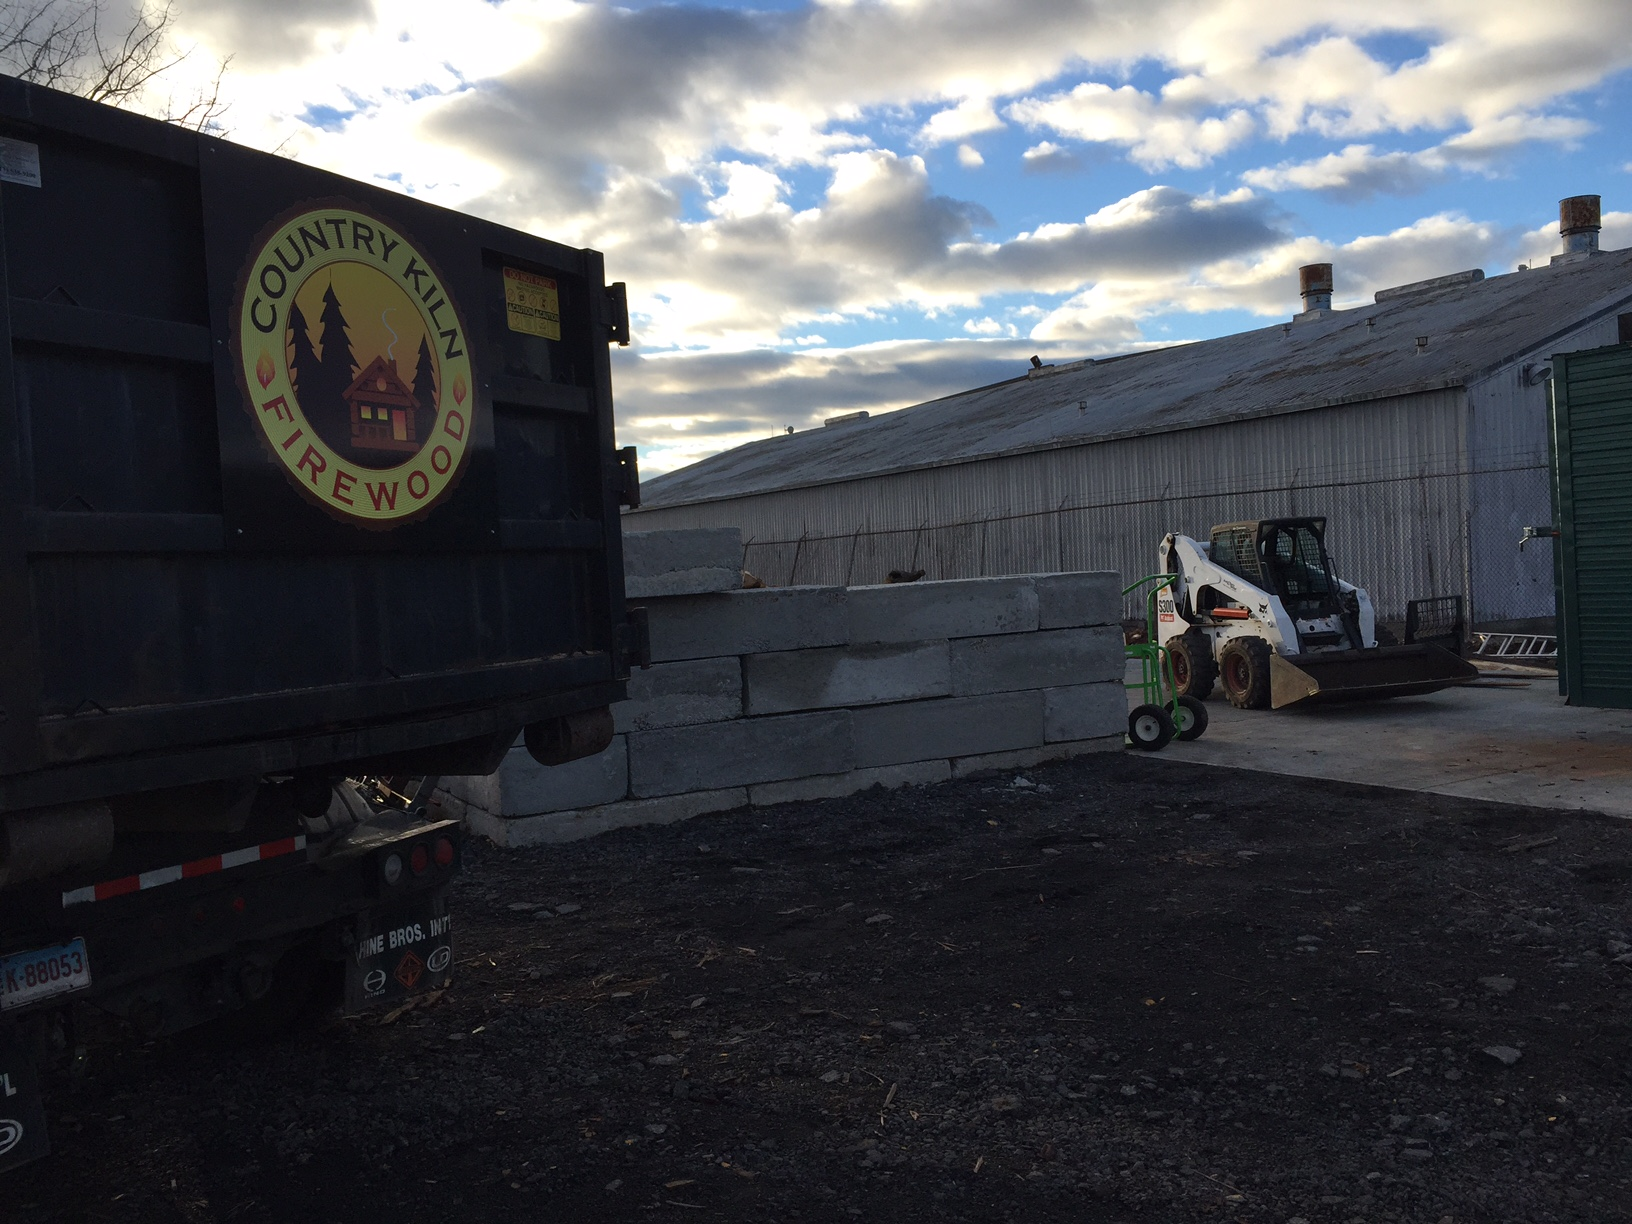 Country Kiln Firewood delivers to all of Connecticut including but not limited to: Fairfield County, New Haven County, New London County, Middlesex County, Litchfield County, Tolland County, Windham County.